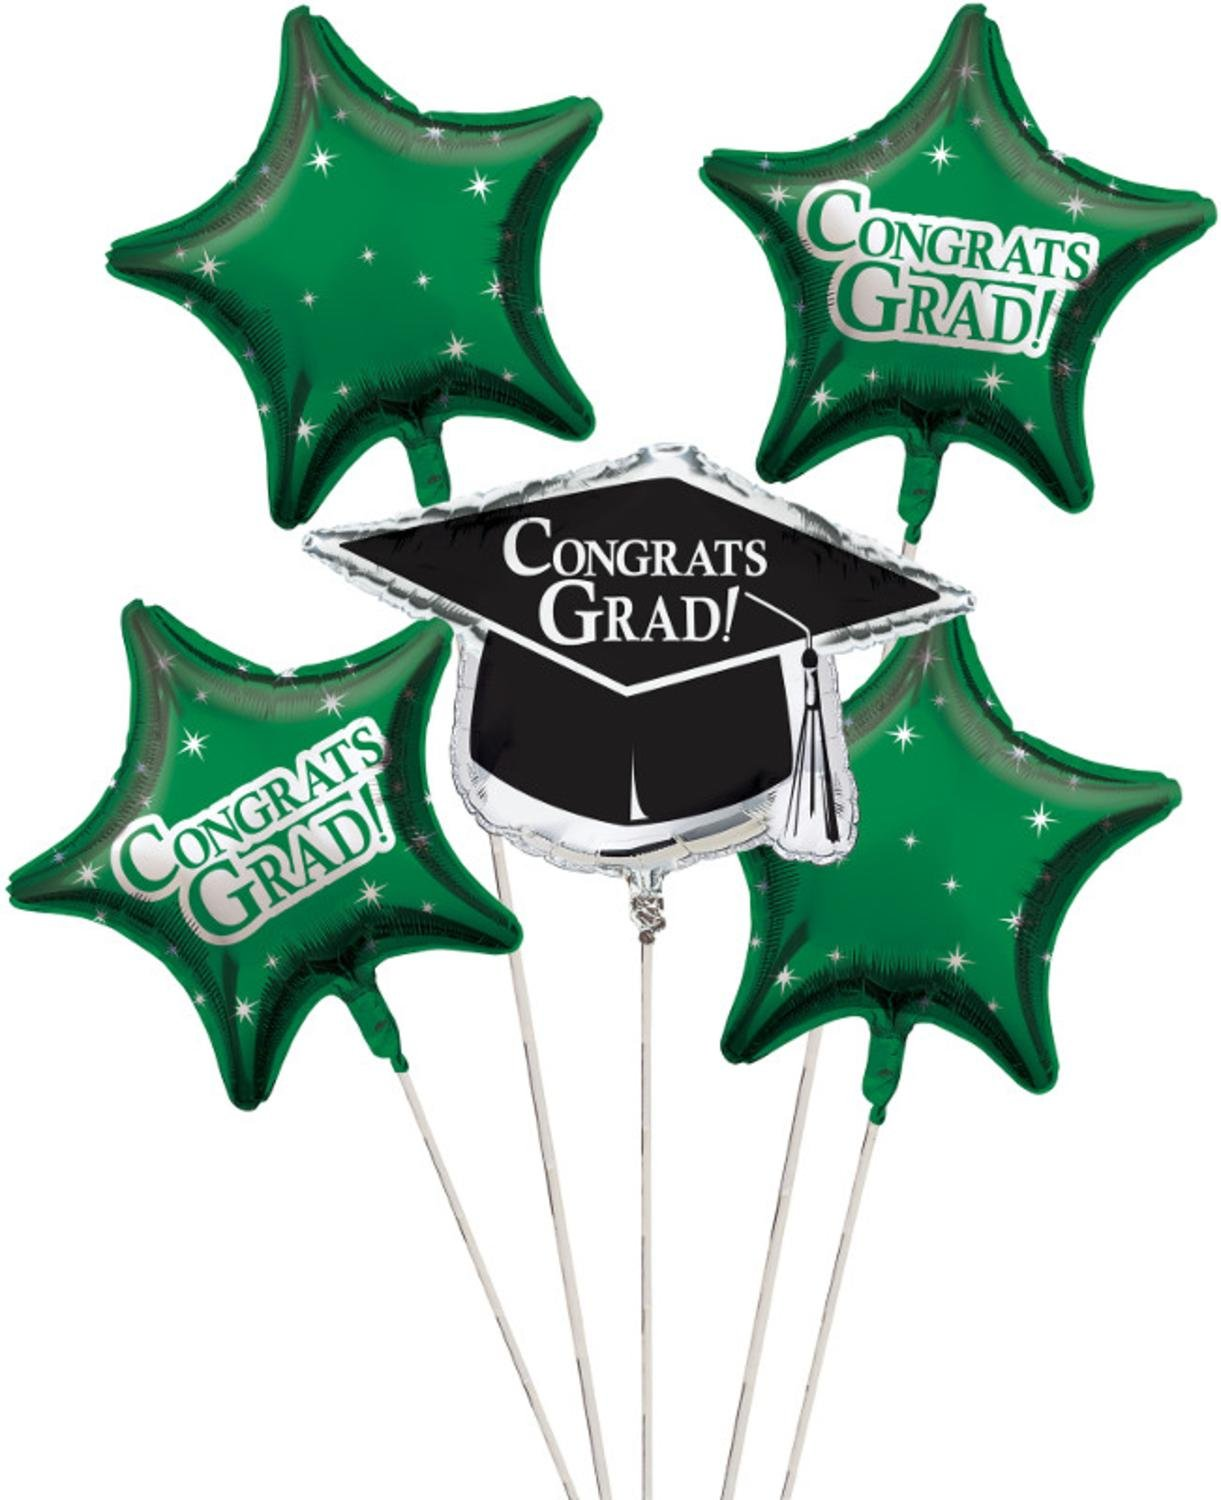 Club Pack of 12 Emerald Green Metallic Foil ''Congrats Grad'' Graduation Day Party Balloon Clusters by Party Central